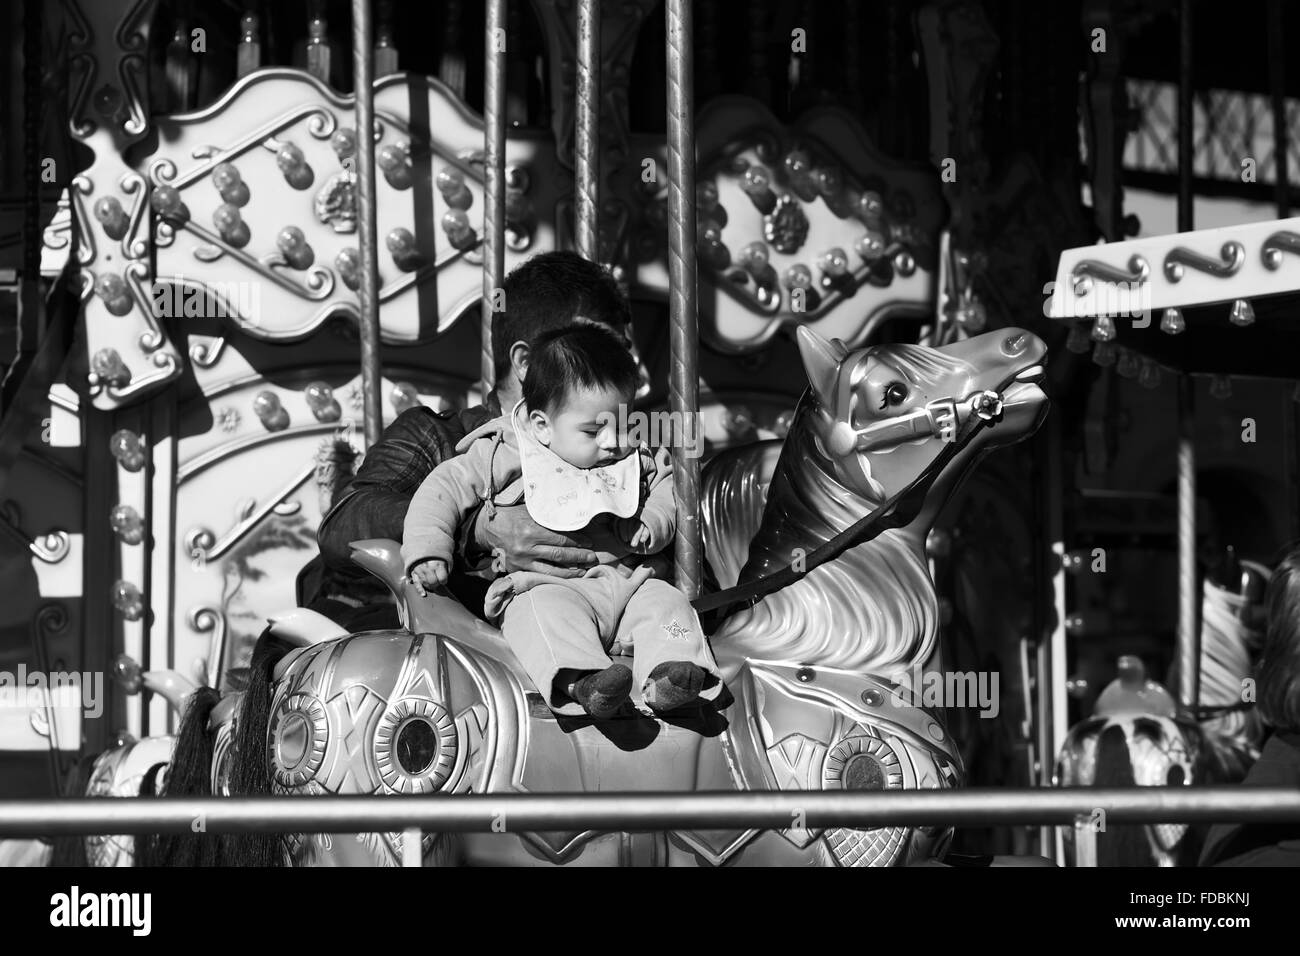 SANTIAGO, CHILE - JULY 16, 2015: Young child sitting on the carousel located in the Estacion Central railway station - Stock Image